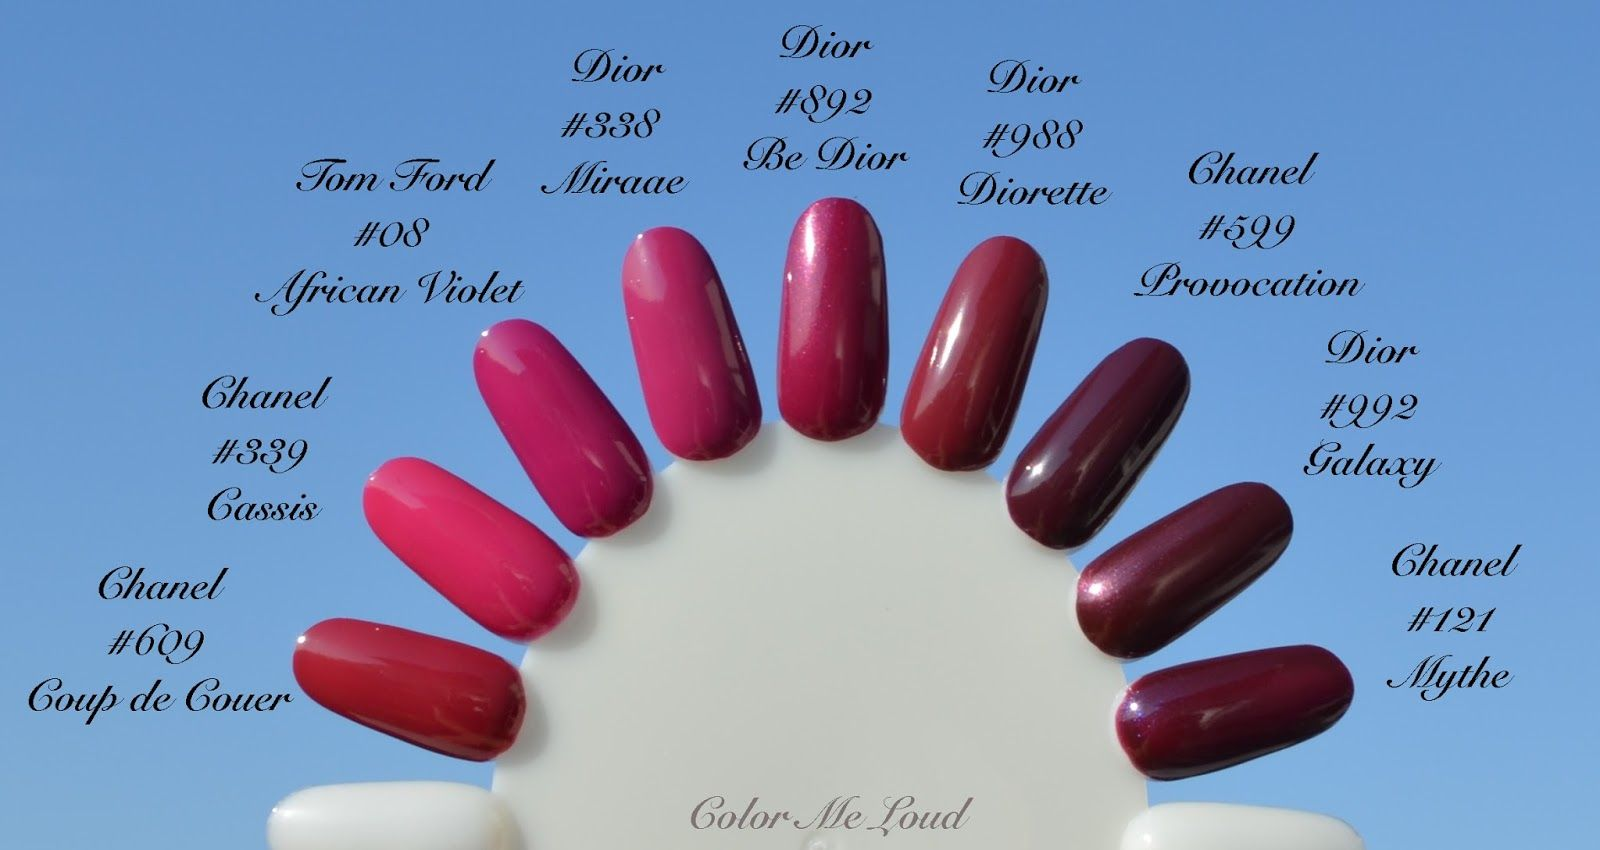 Dior Vernis #558 Tribale, #552 Smile, #868 Wonderful, #892 Be Dior ...